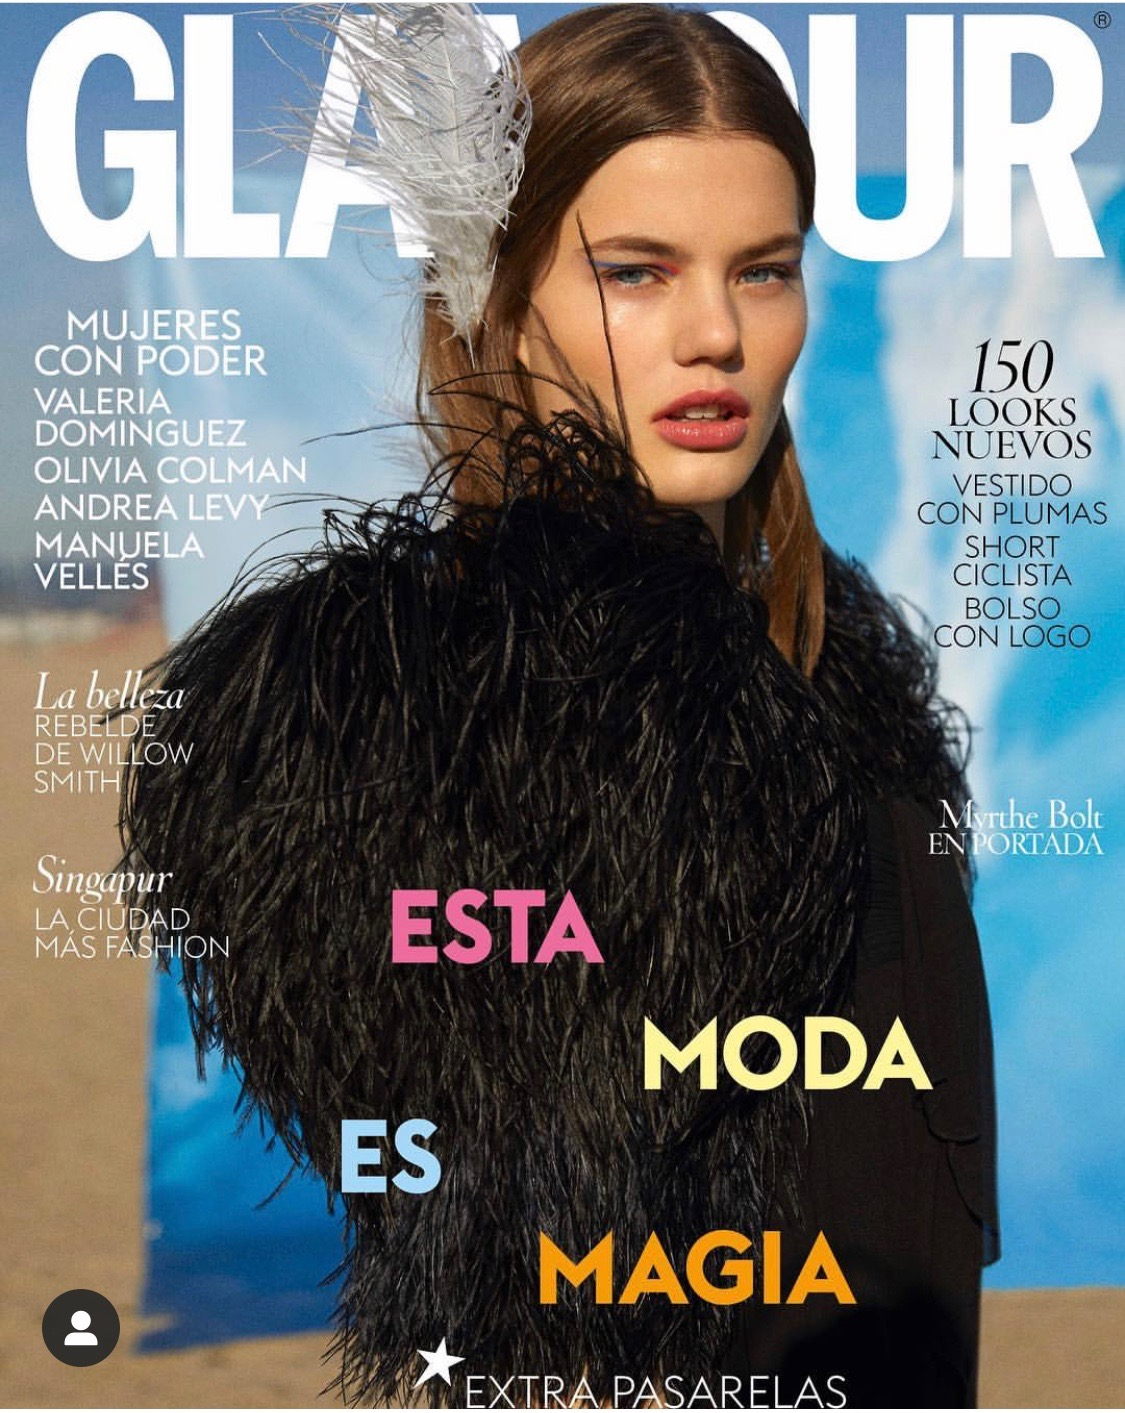 Myrthe Bolt for Glamour